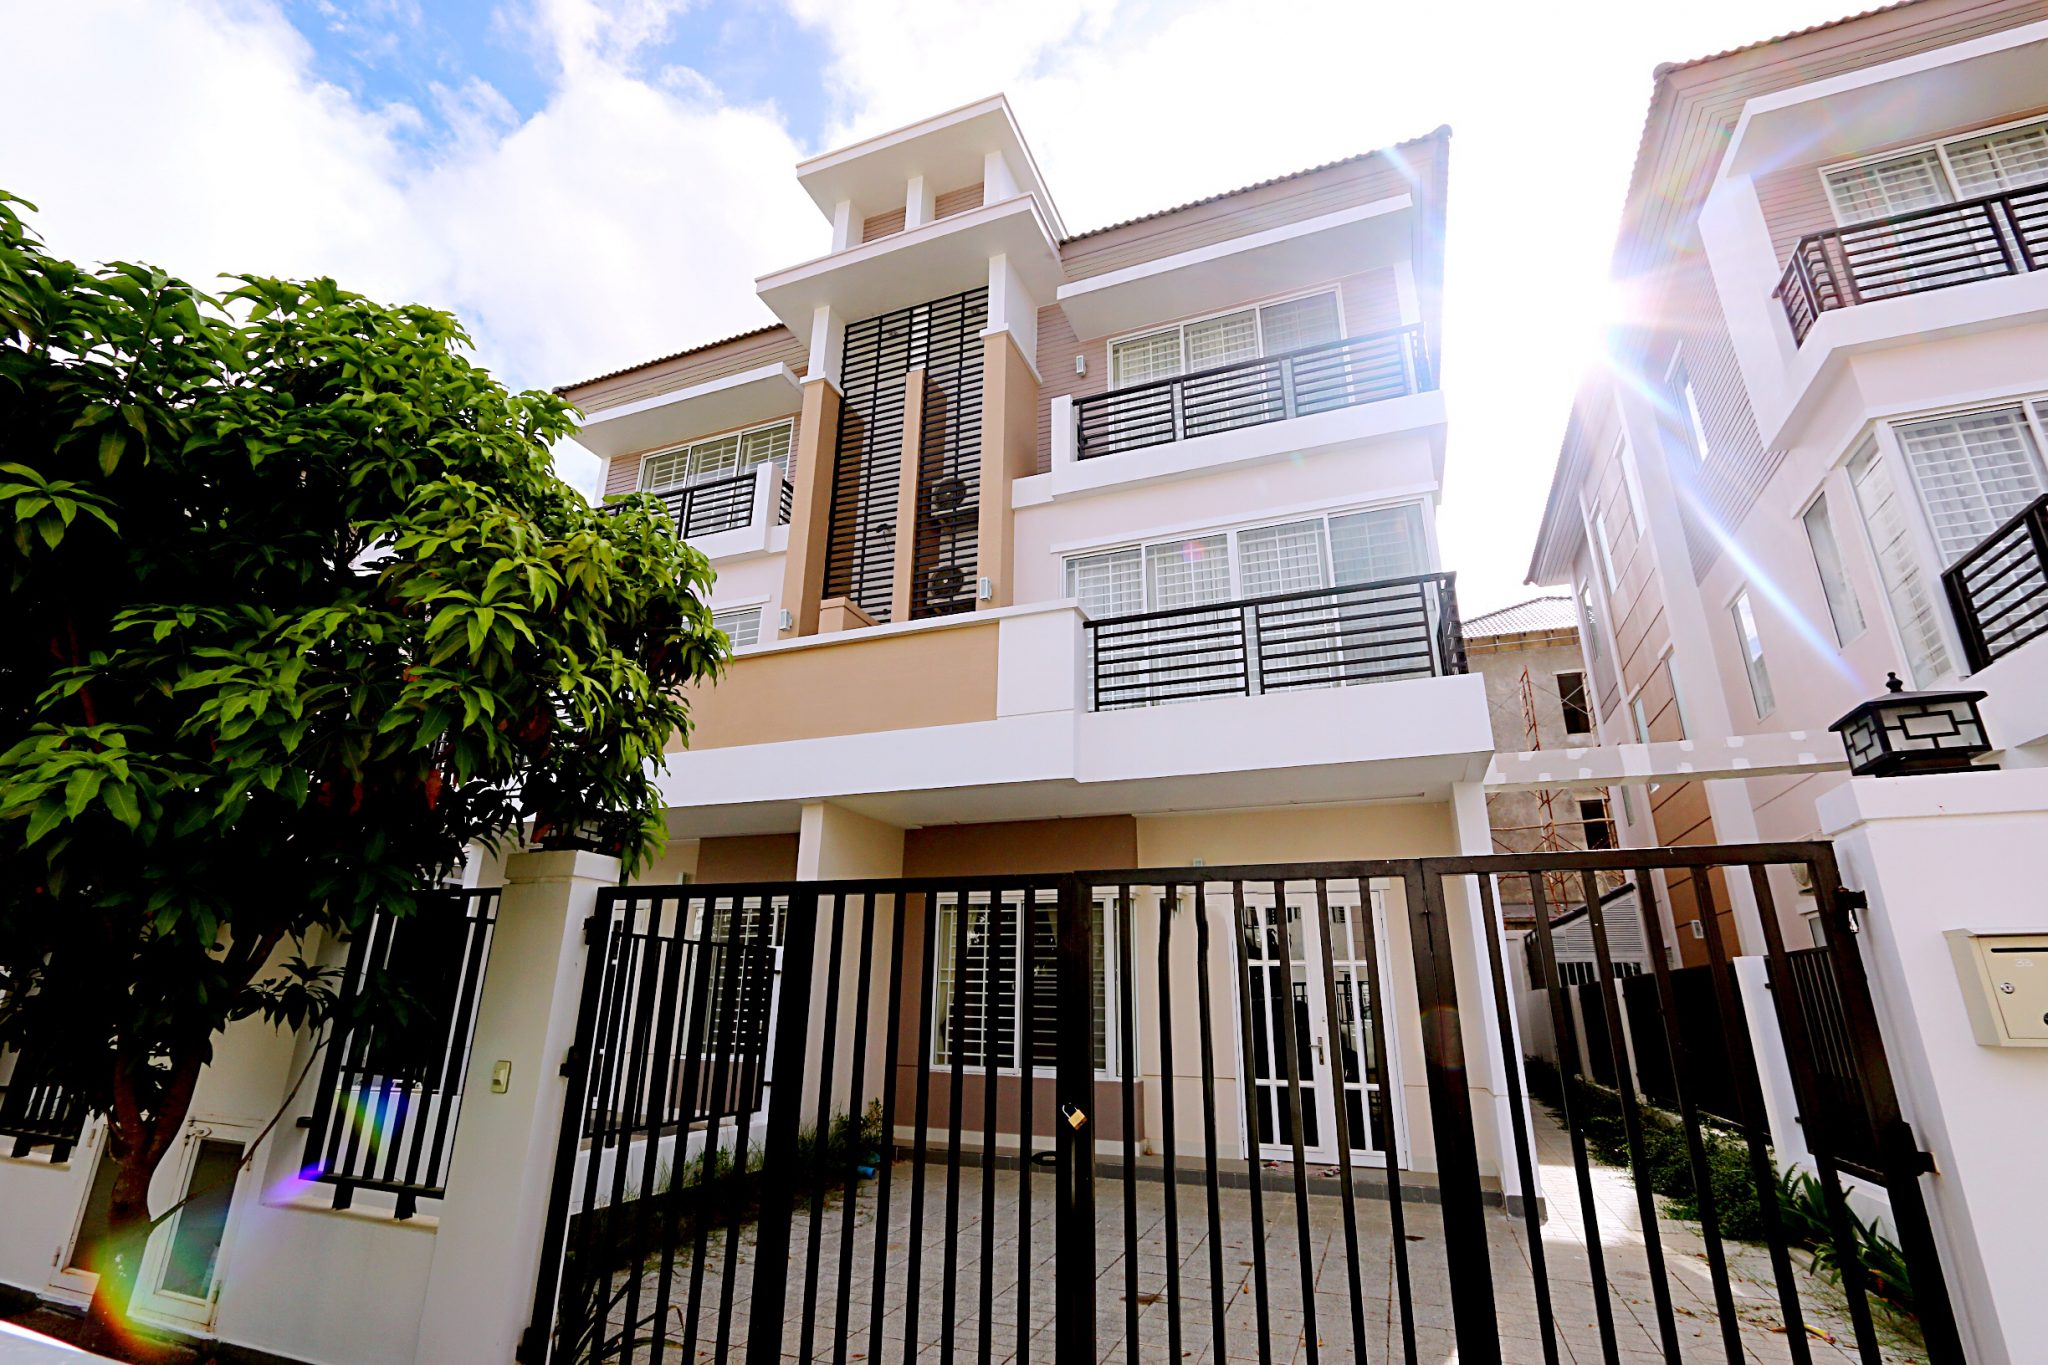 | 4-Bedroom House @ Borey Peng Huoth, Chbar Ampov